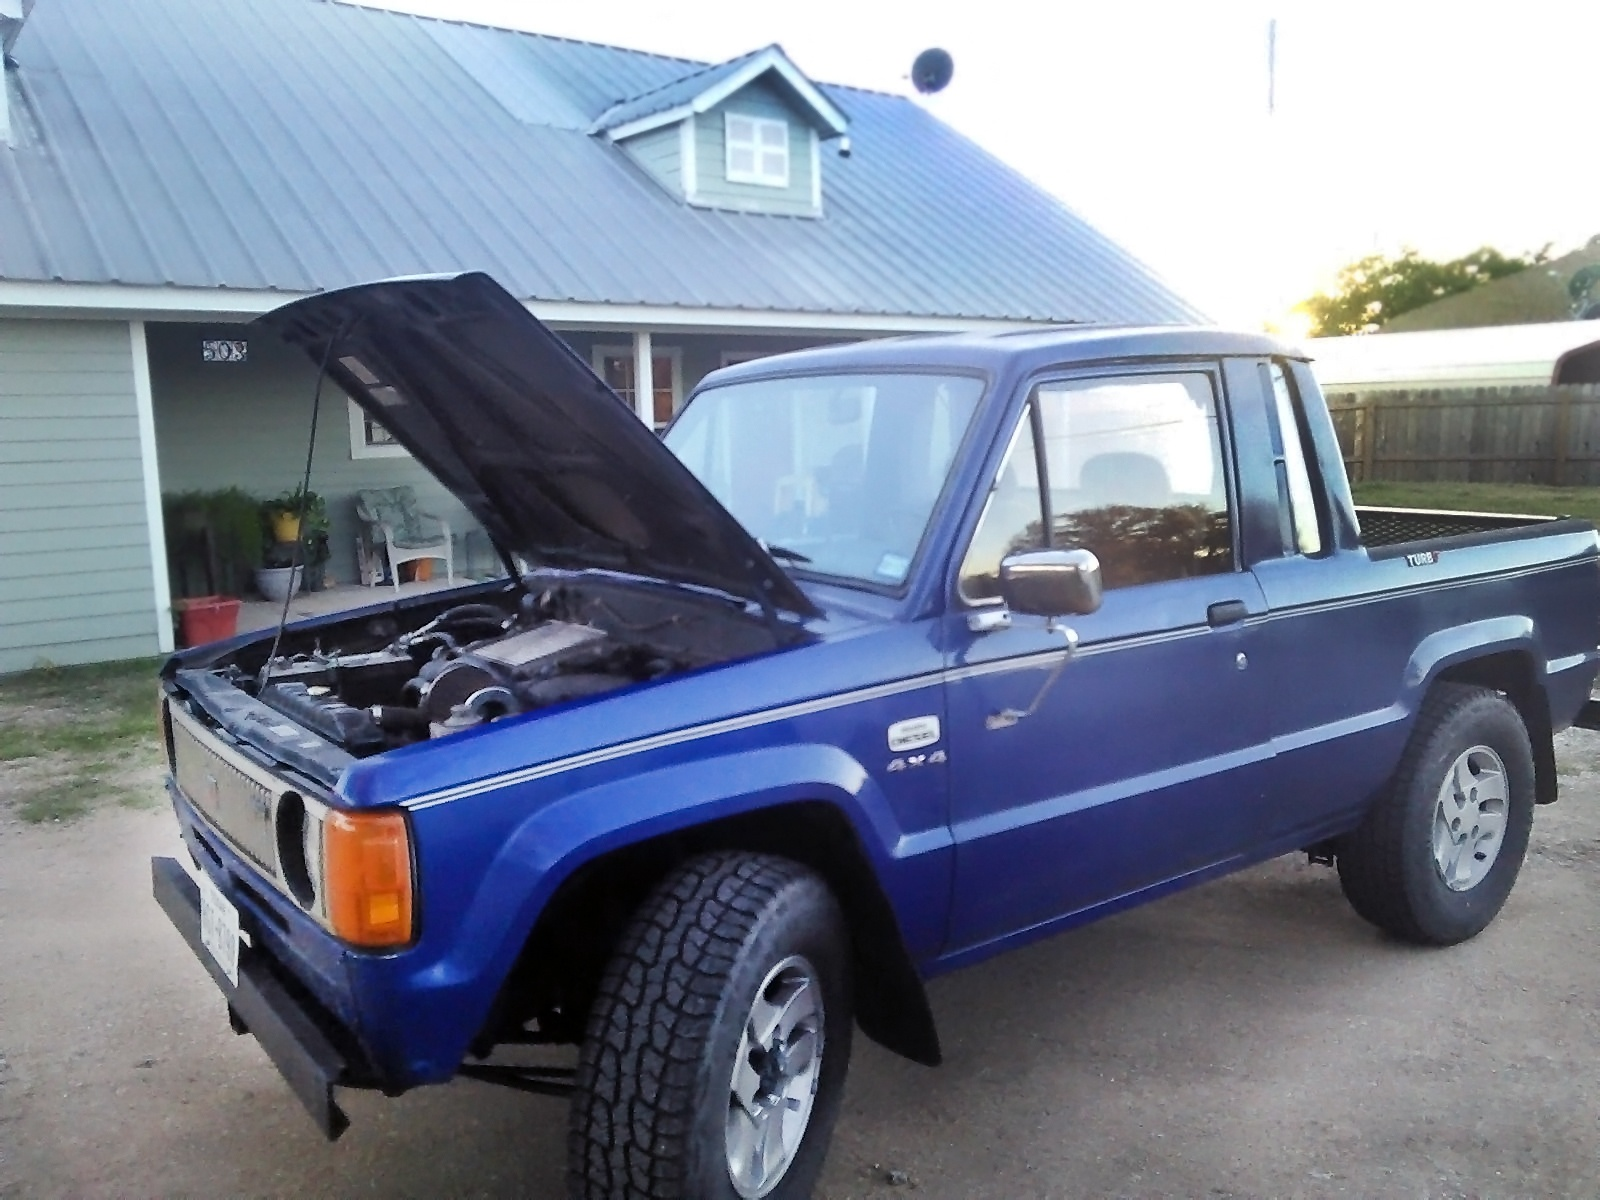 Captivating 113016 Barn Finds 1986 Isuzu Trooper Diesel Pickup